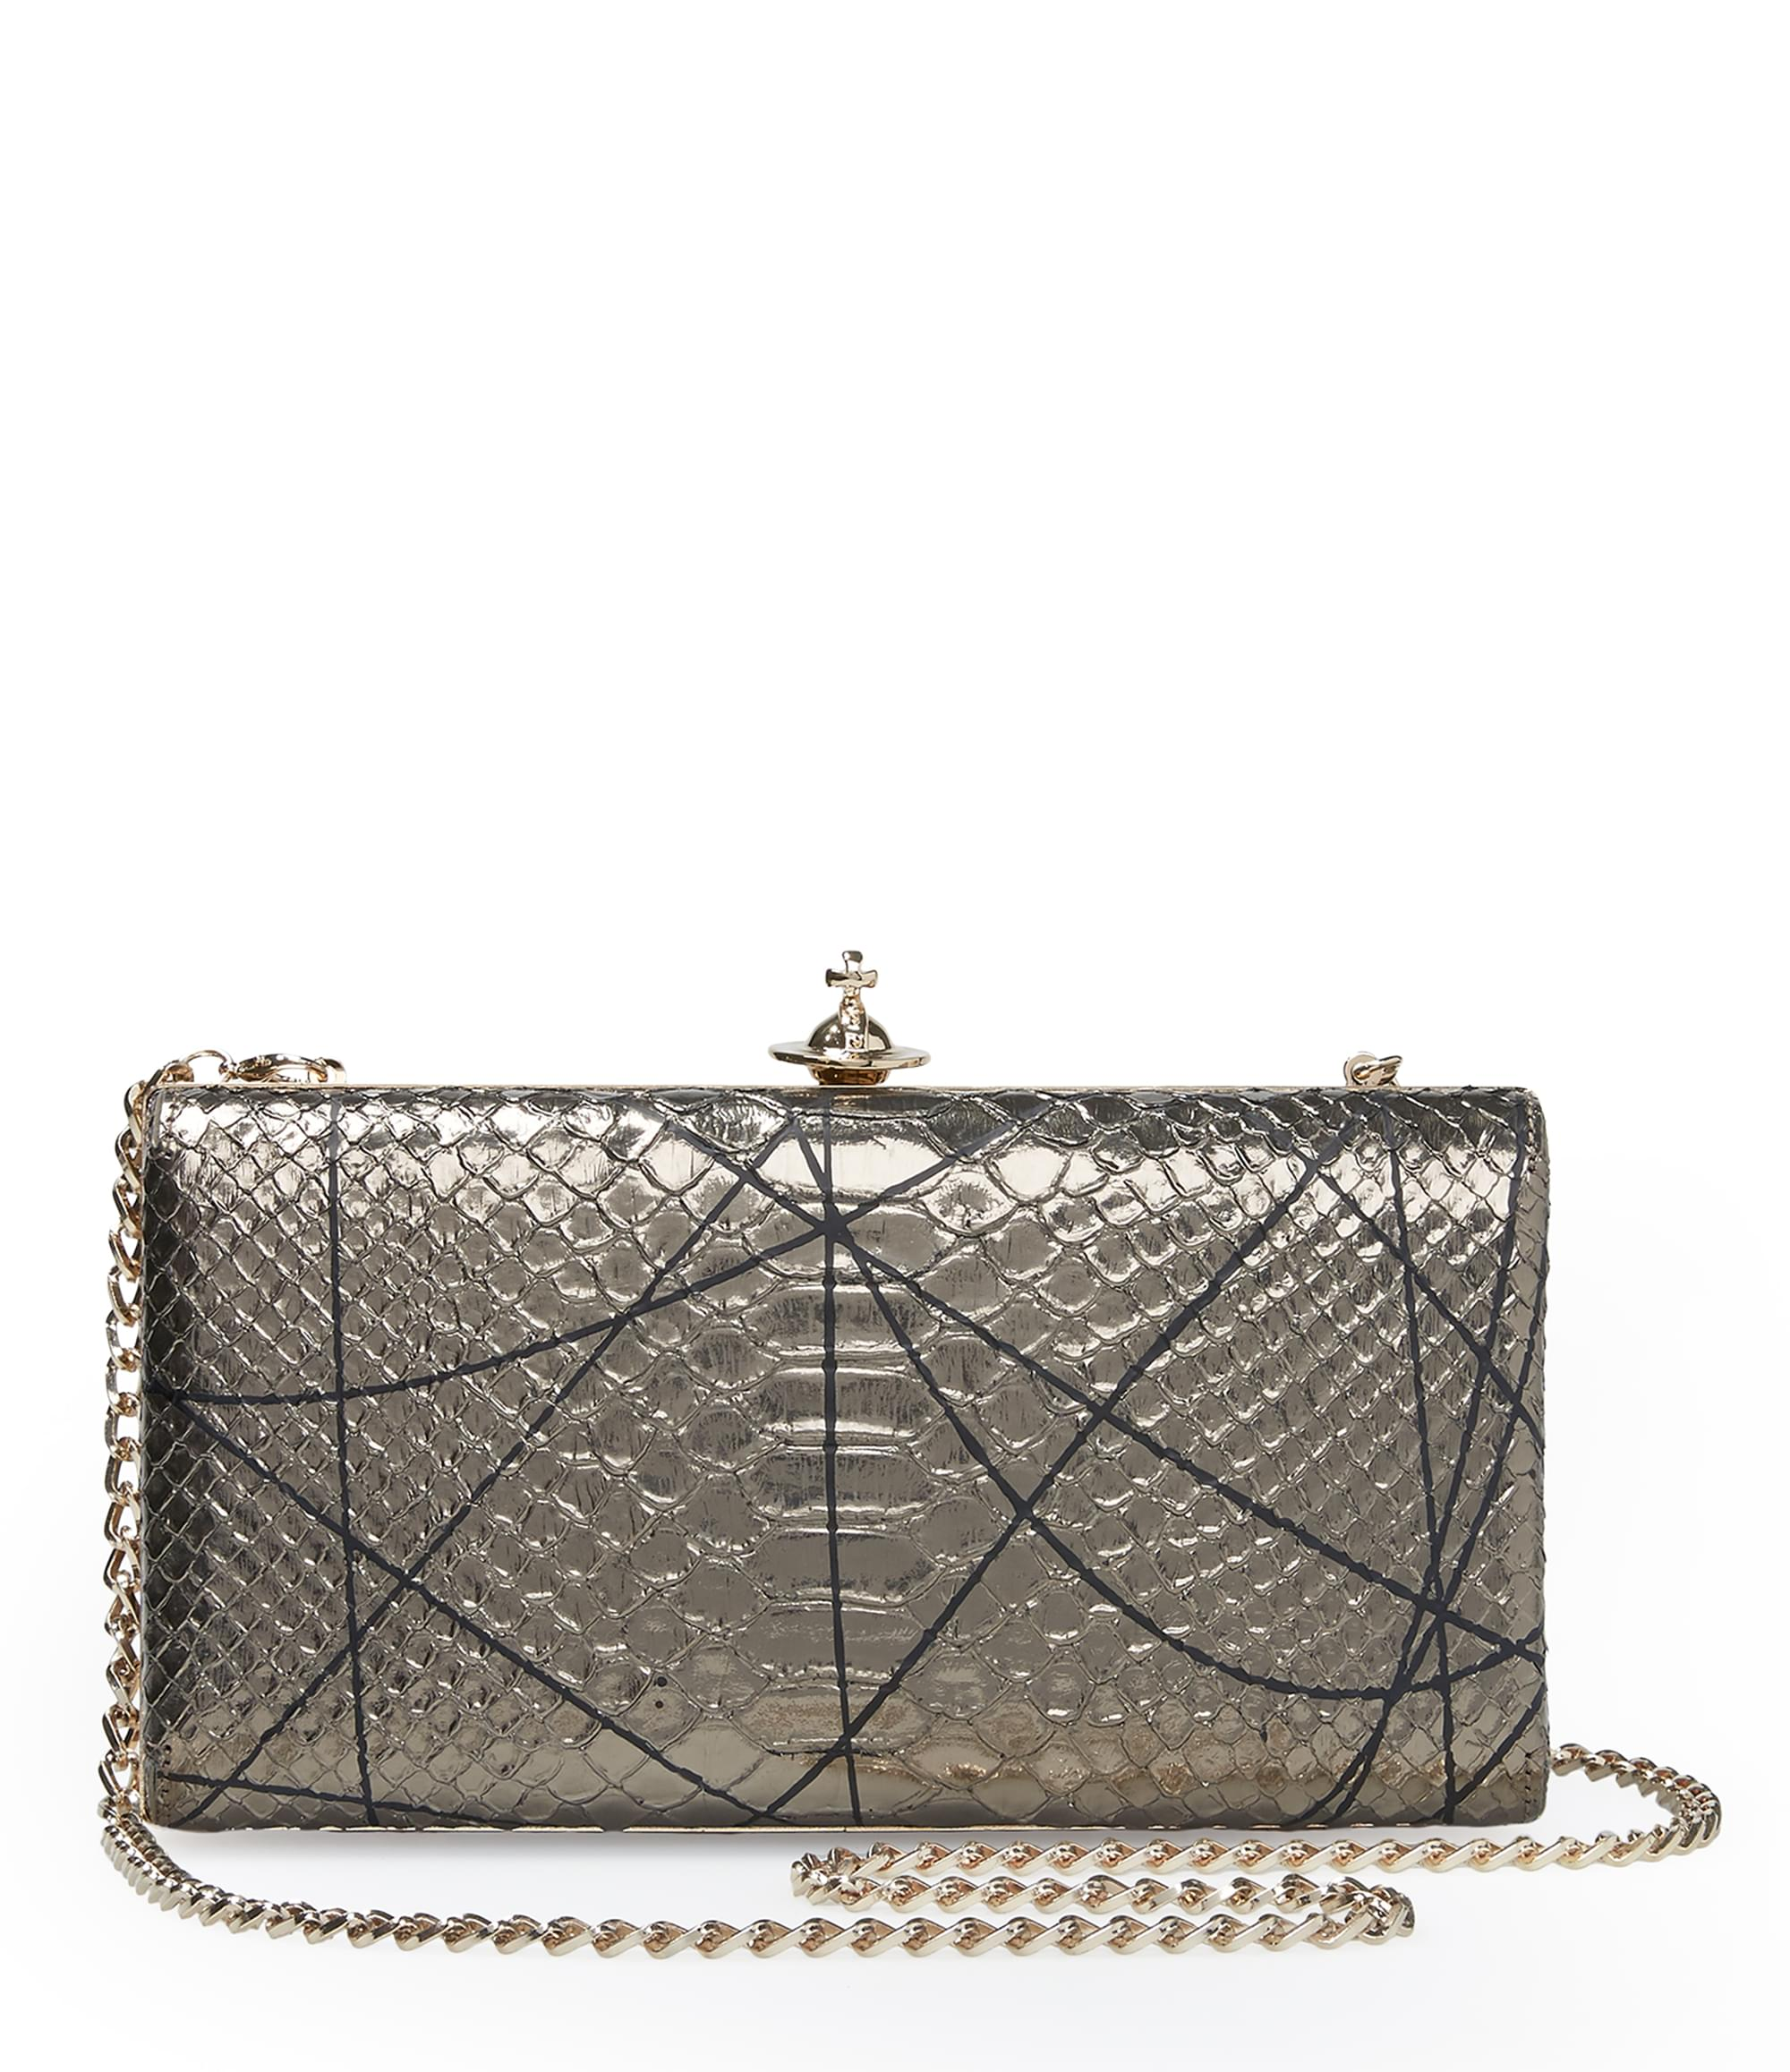 Vivienne Westwood Grey Pollock Clutch Bag 131071